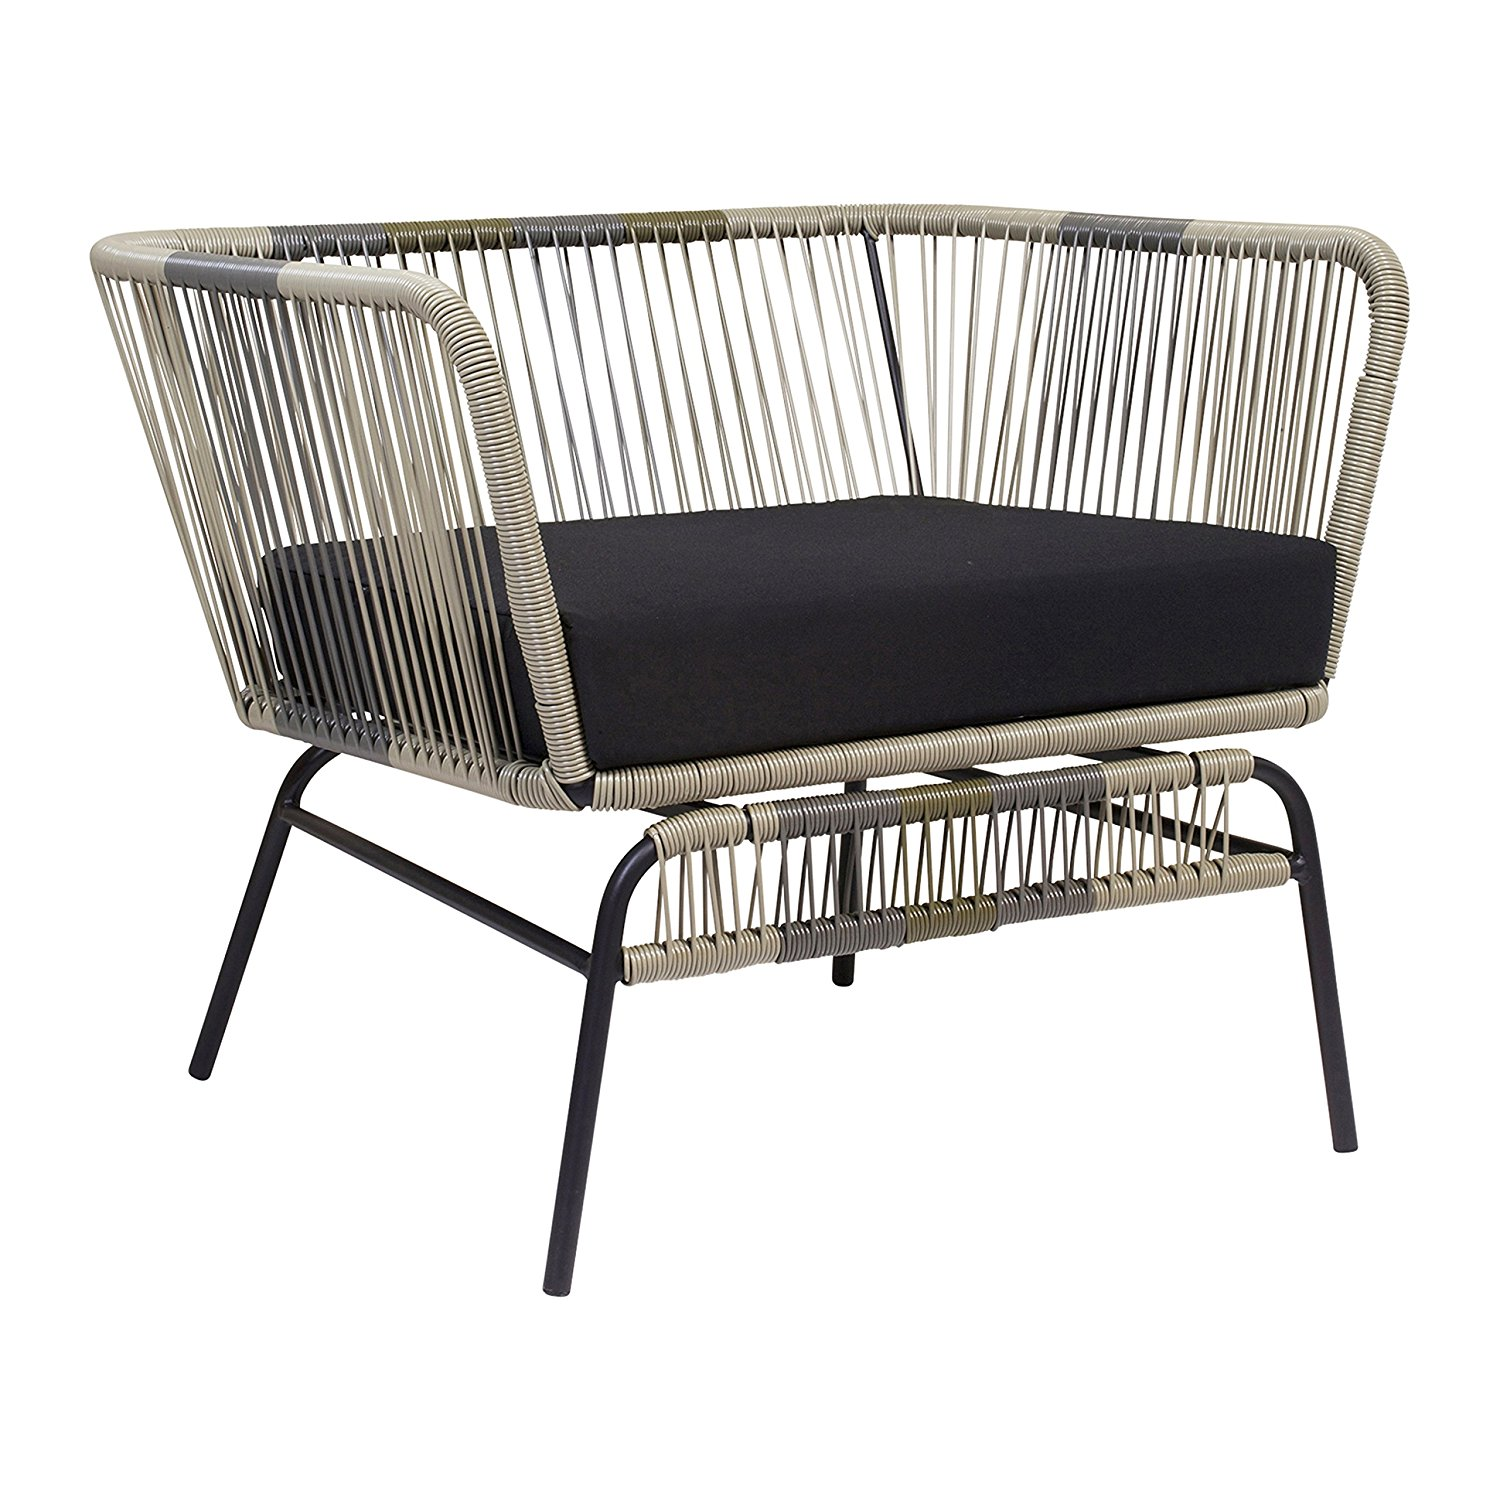 Acapulco Indoor / Outdoor Lounge Chair, Neutral Green, Black Padded Seat